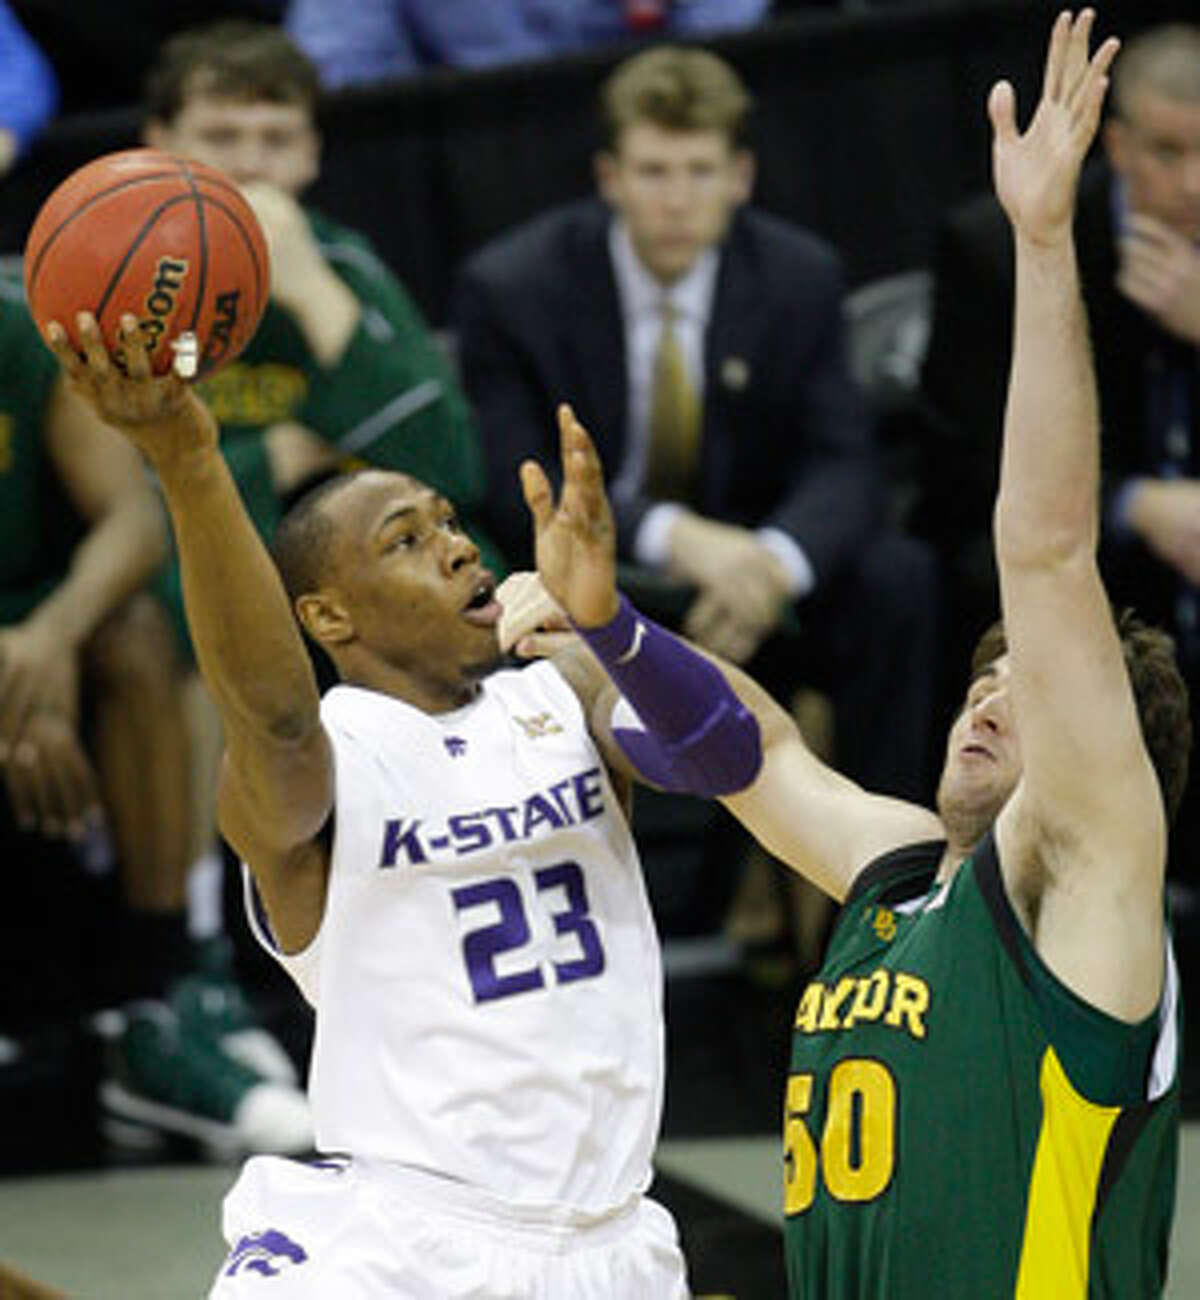 Kansas State's ever-in-motion forward Dominique Sutton, in action against Baylor in the Big 12 tournament, performs a little out of the spotlight so his team has a chance to shine in it.